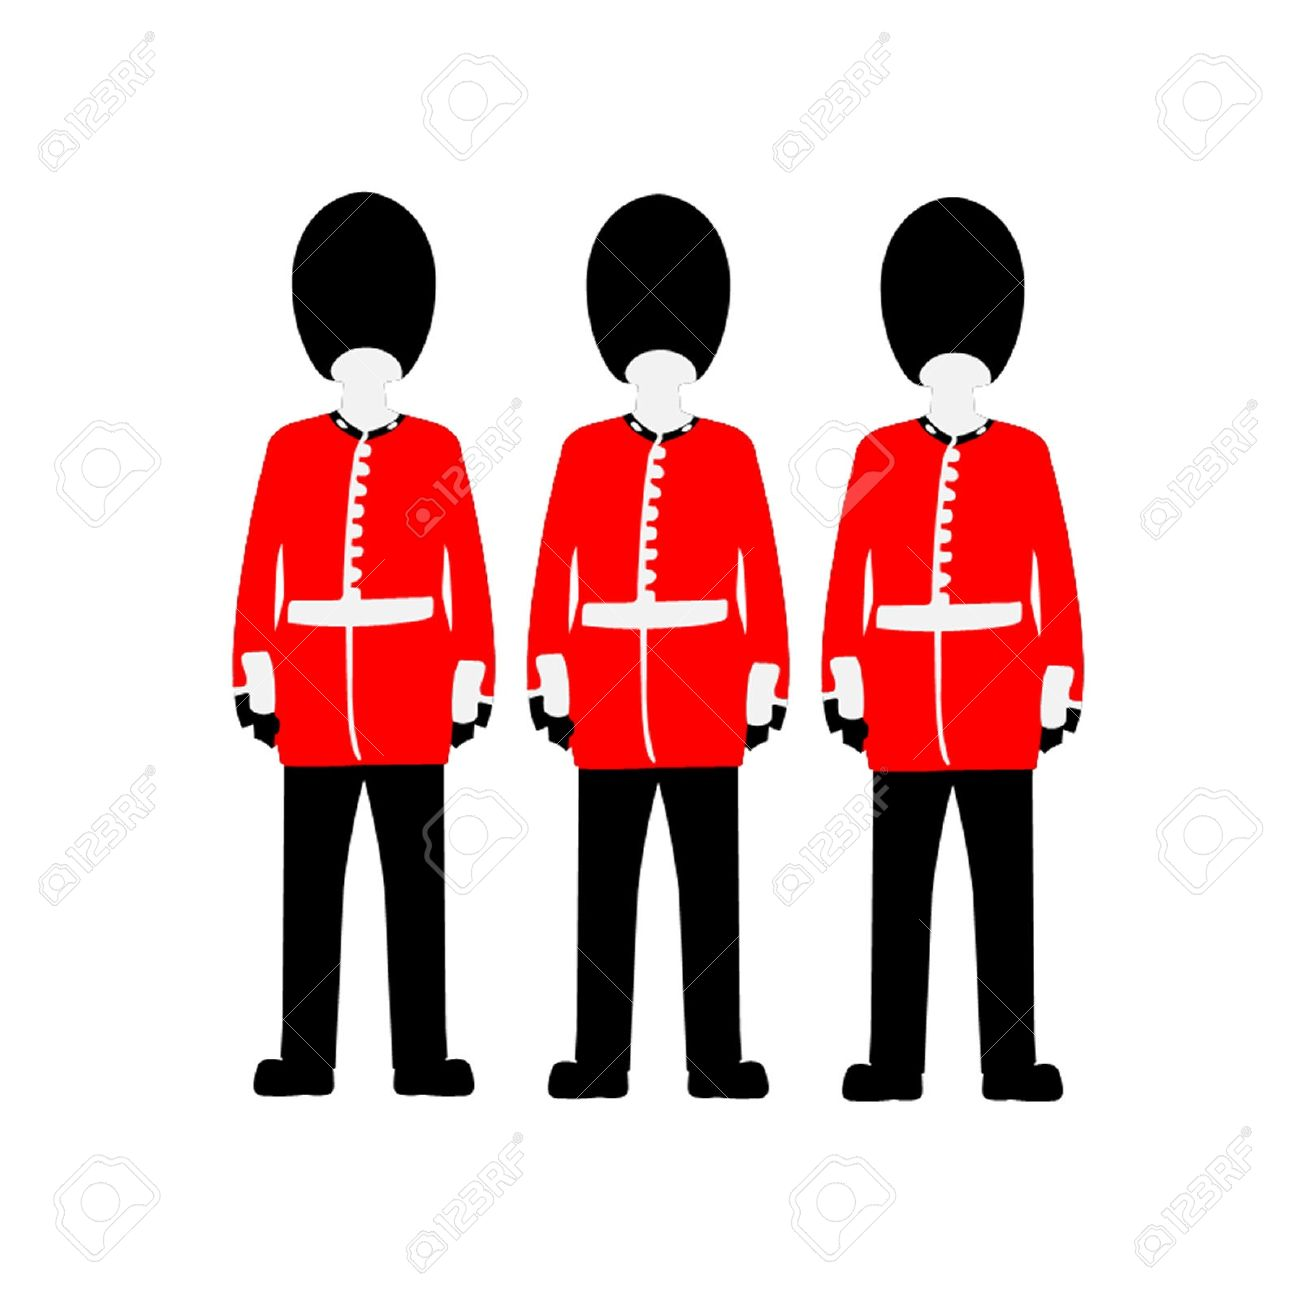 Guards clipart.